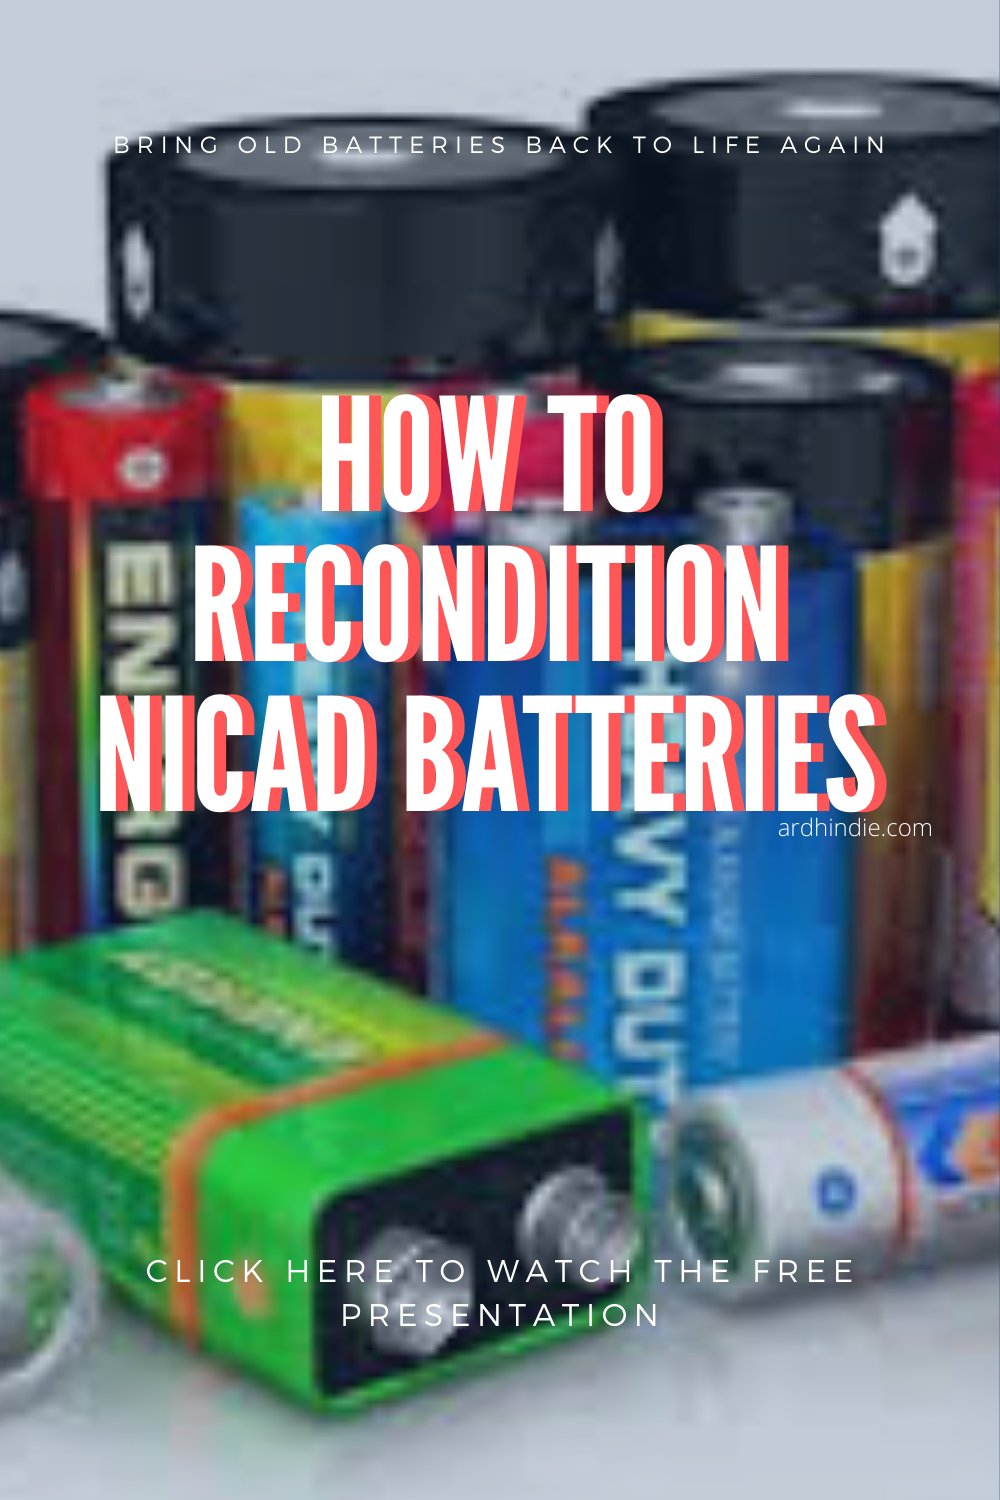 How To Recondition Nicad Batteries Car Battery Hacks Batteries Diy Battery Hacks